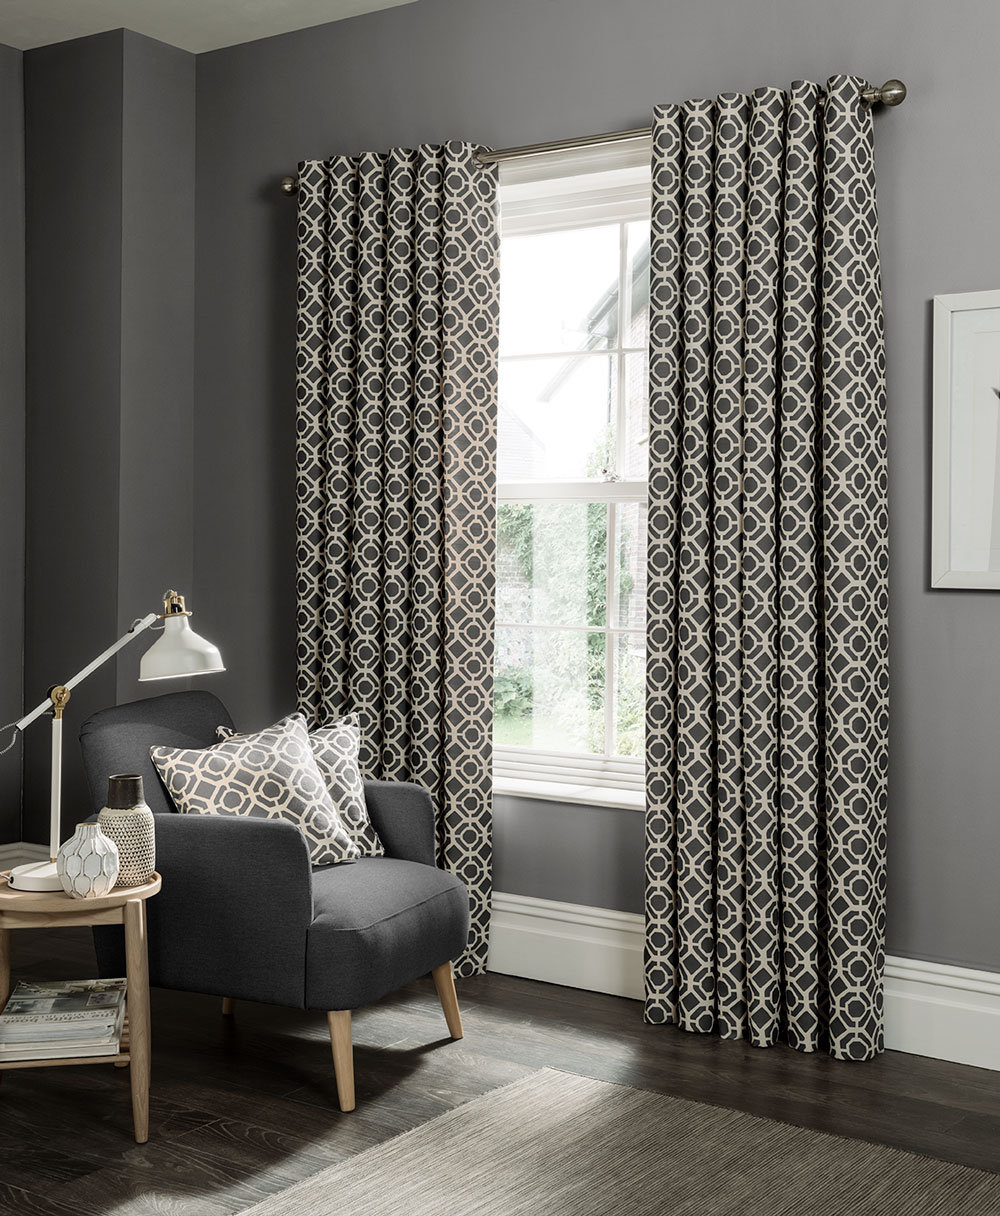 Castello Eyelet Curtains Ready Made Curtains - Charcoal - by Studio G